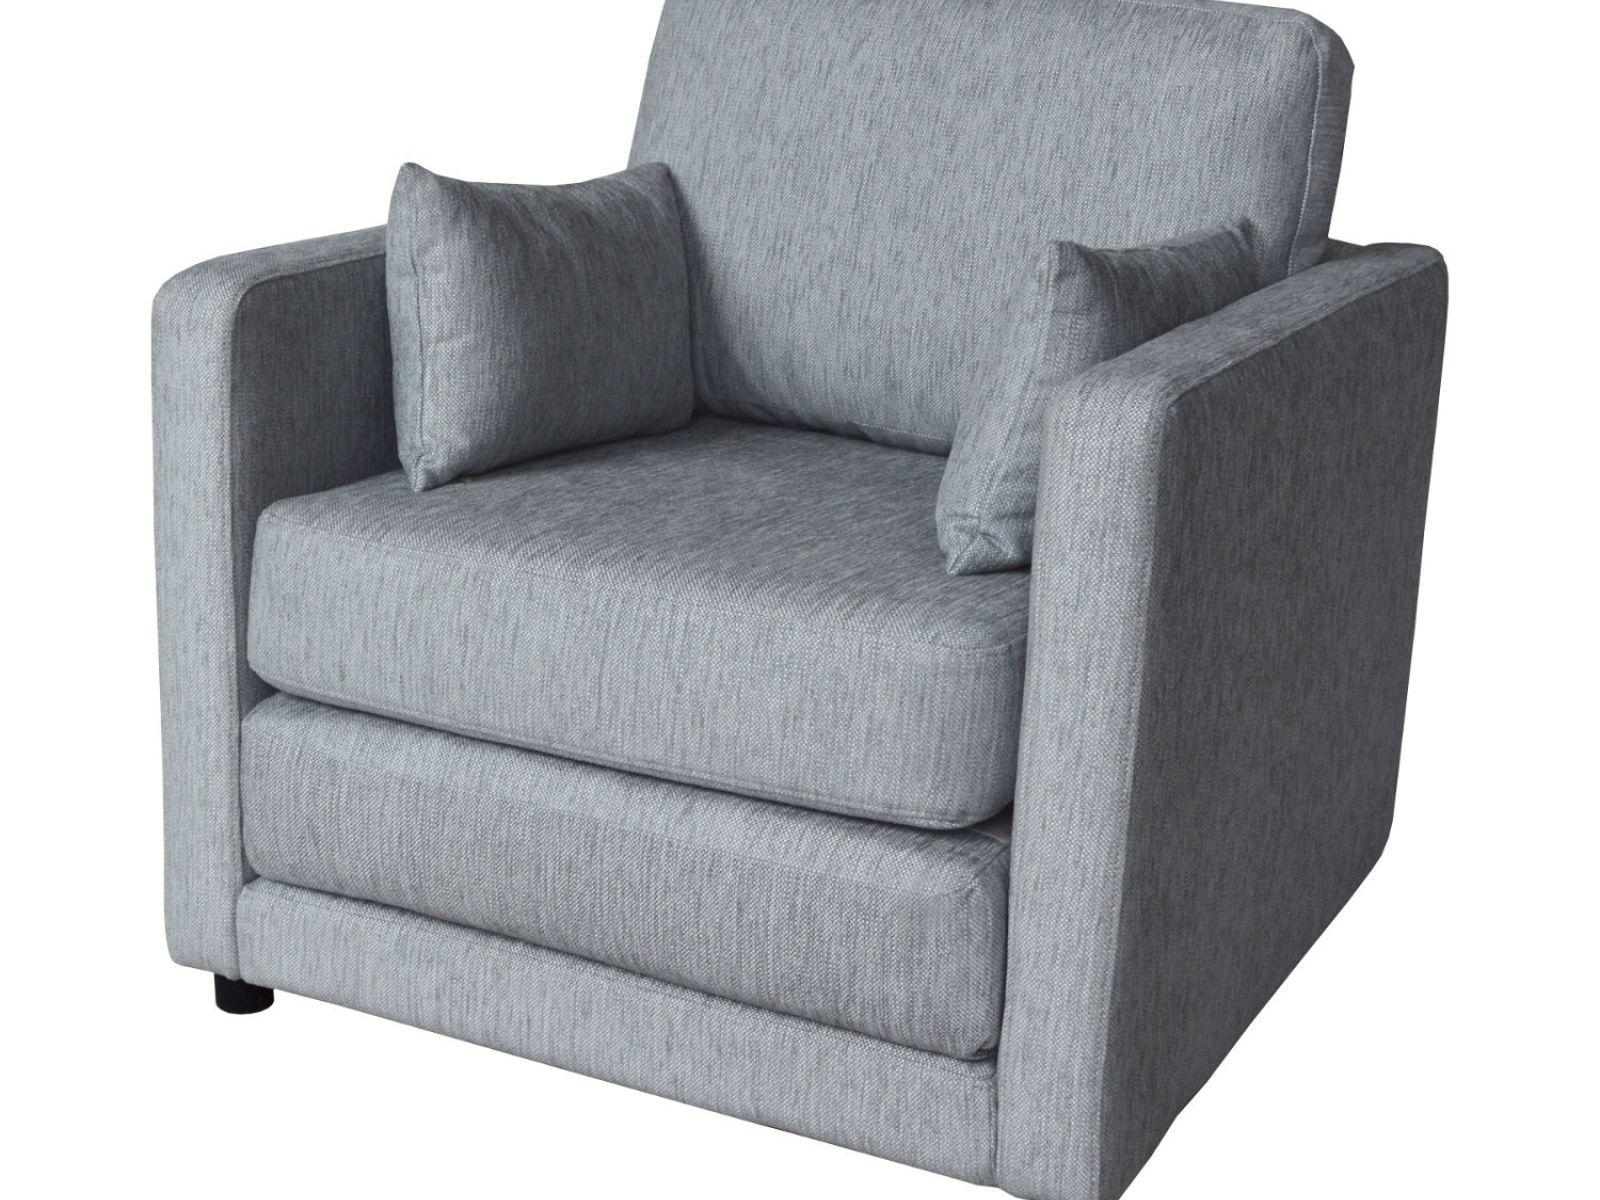 ▻ Sofa : 39 Fancy Sofa With Sofa Bed Chair About Remodel Bedroom Throughout Single Sofa Bed Chairs (Image 3 of 20)